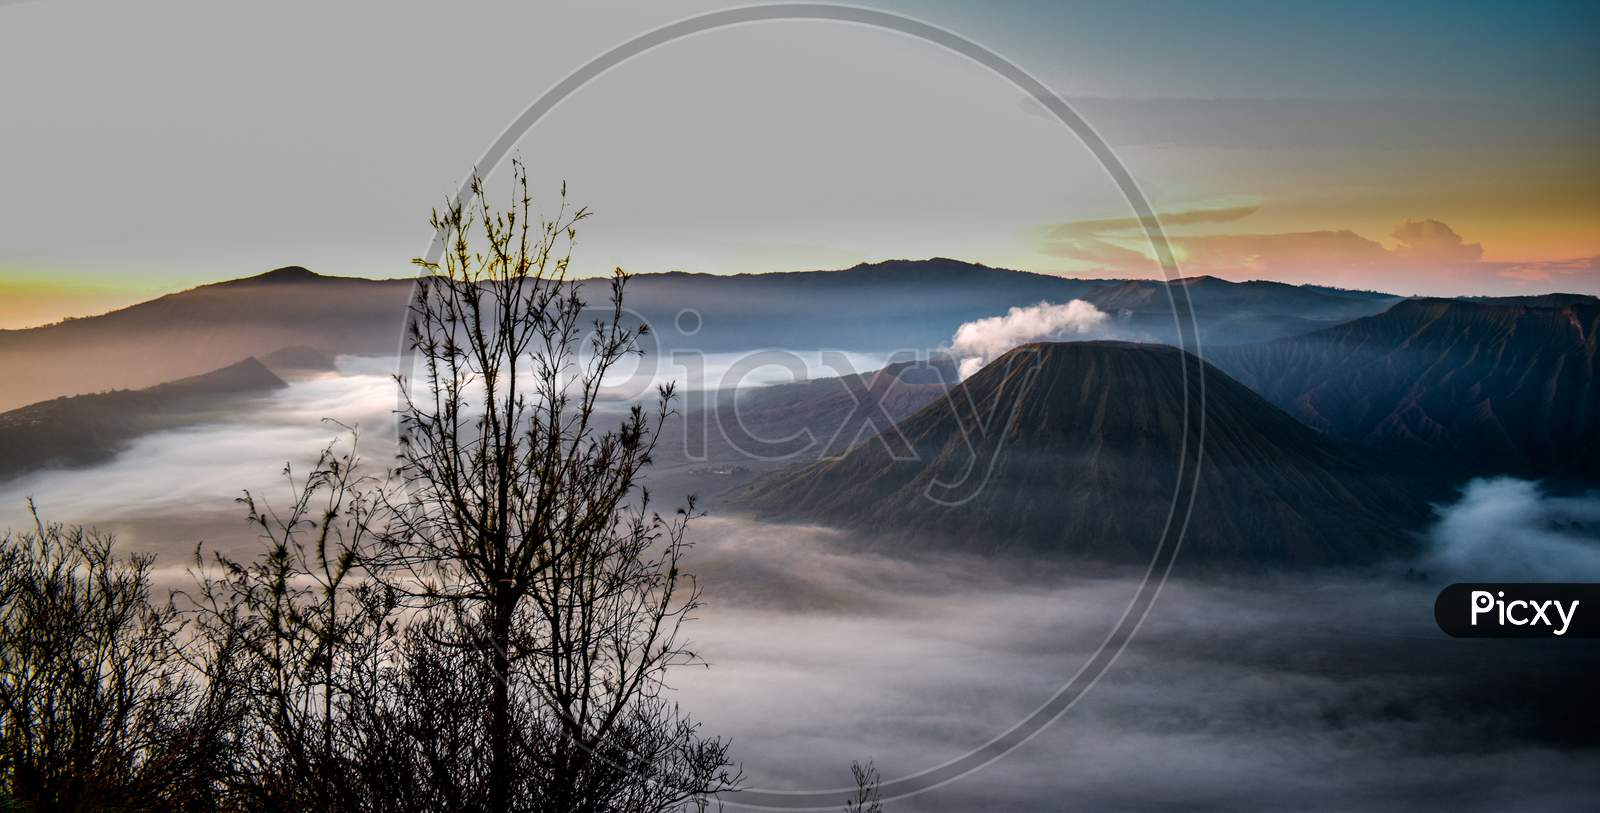 Mount Bromo is naturally misty and dusty which is very beautiful with an old tree as the foreground,Nature bromo volcano